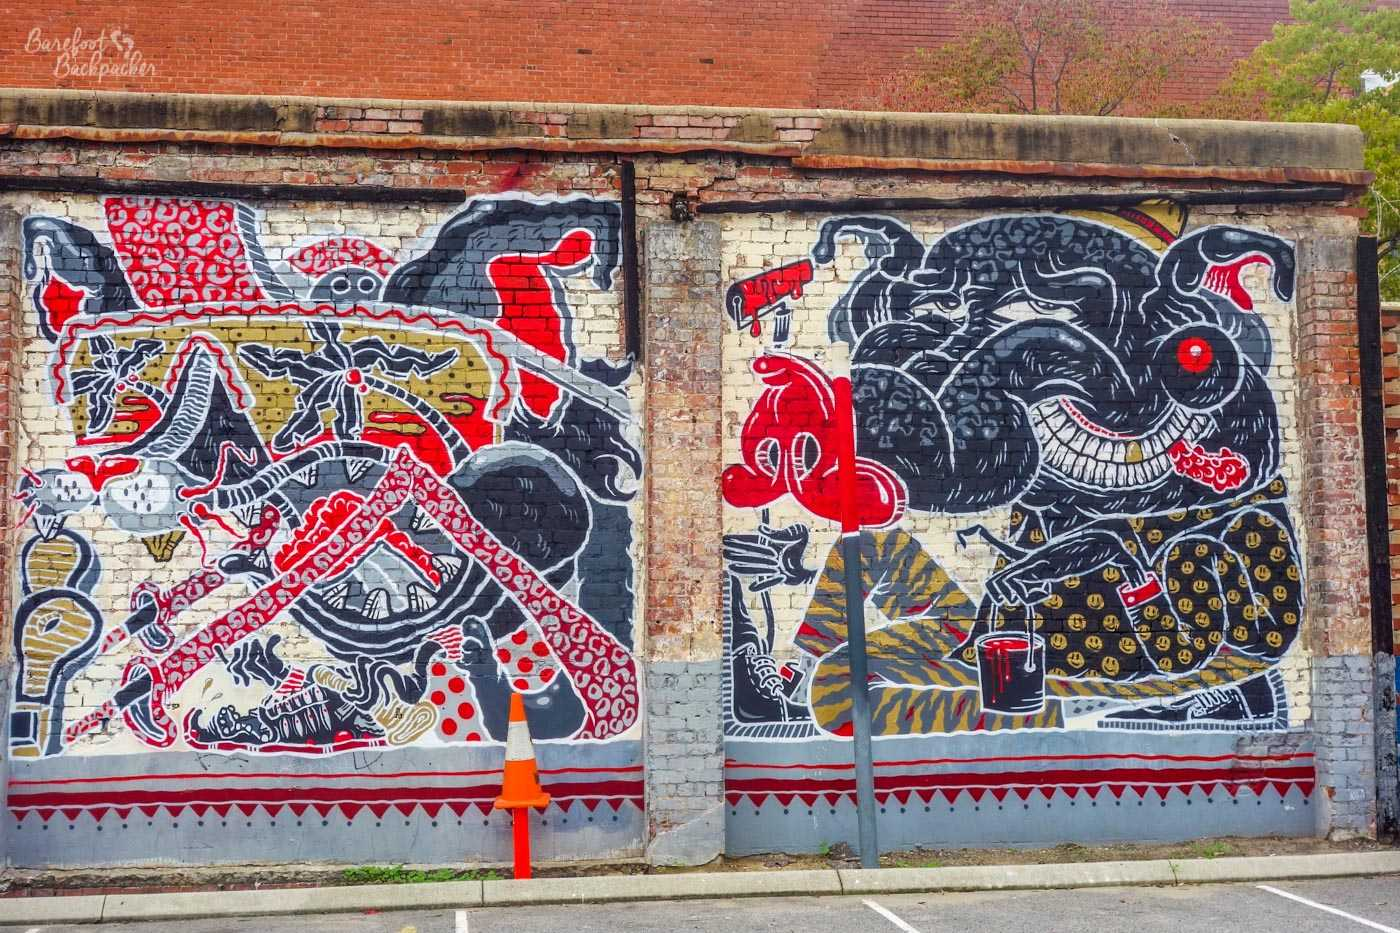 Some weird street art on a wall I came across in Perth in 2014. I've no idea how to even describe it, it's weird, it's got monsters on it, that's about all I can feasibly say.